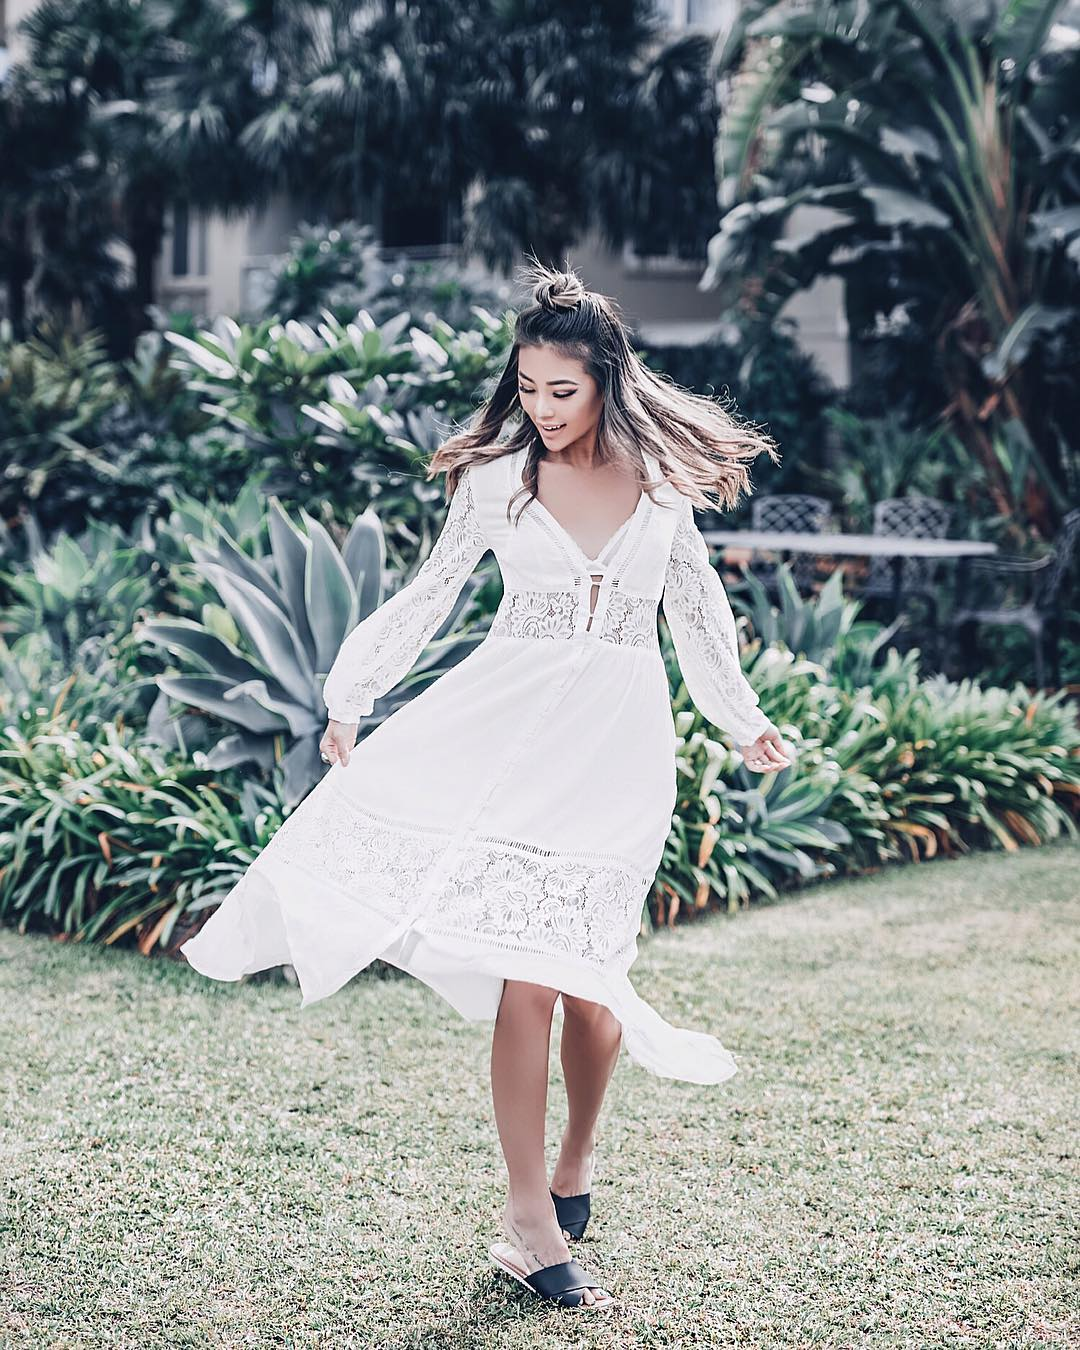 White Dress With Lace Details And Black Leather Slides 2020